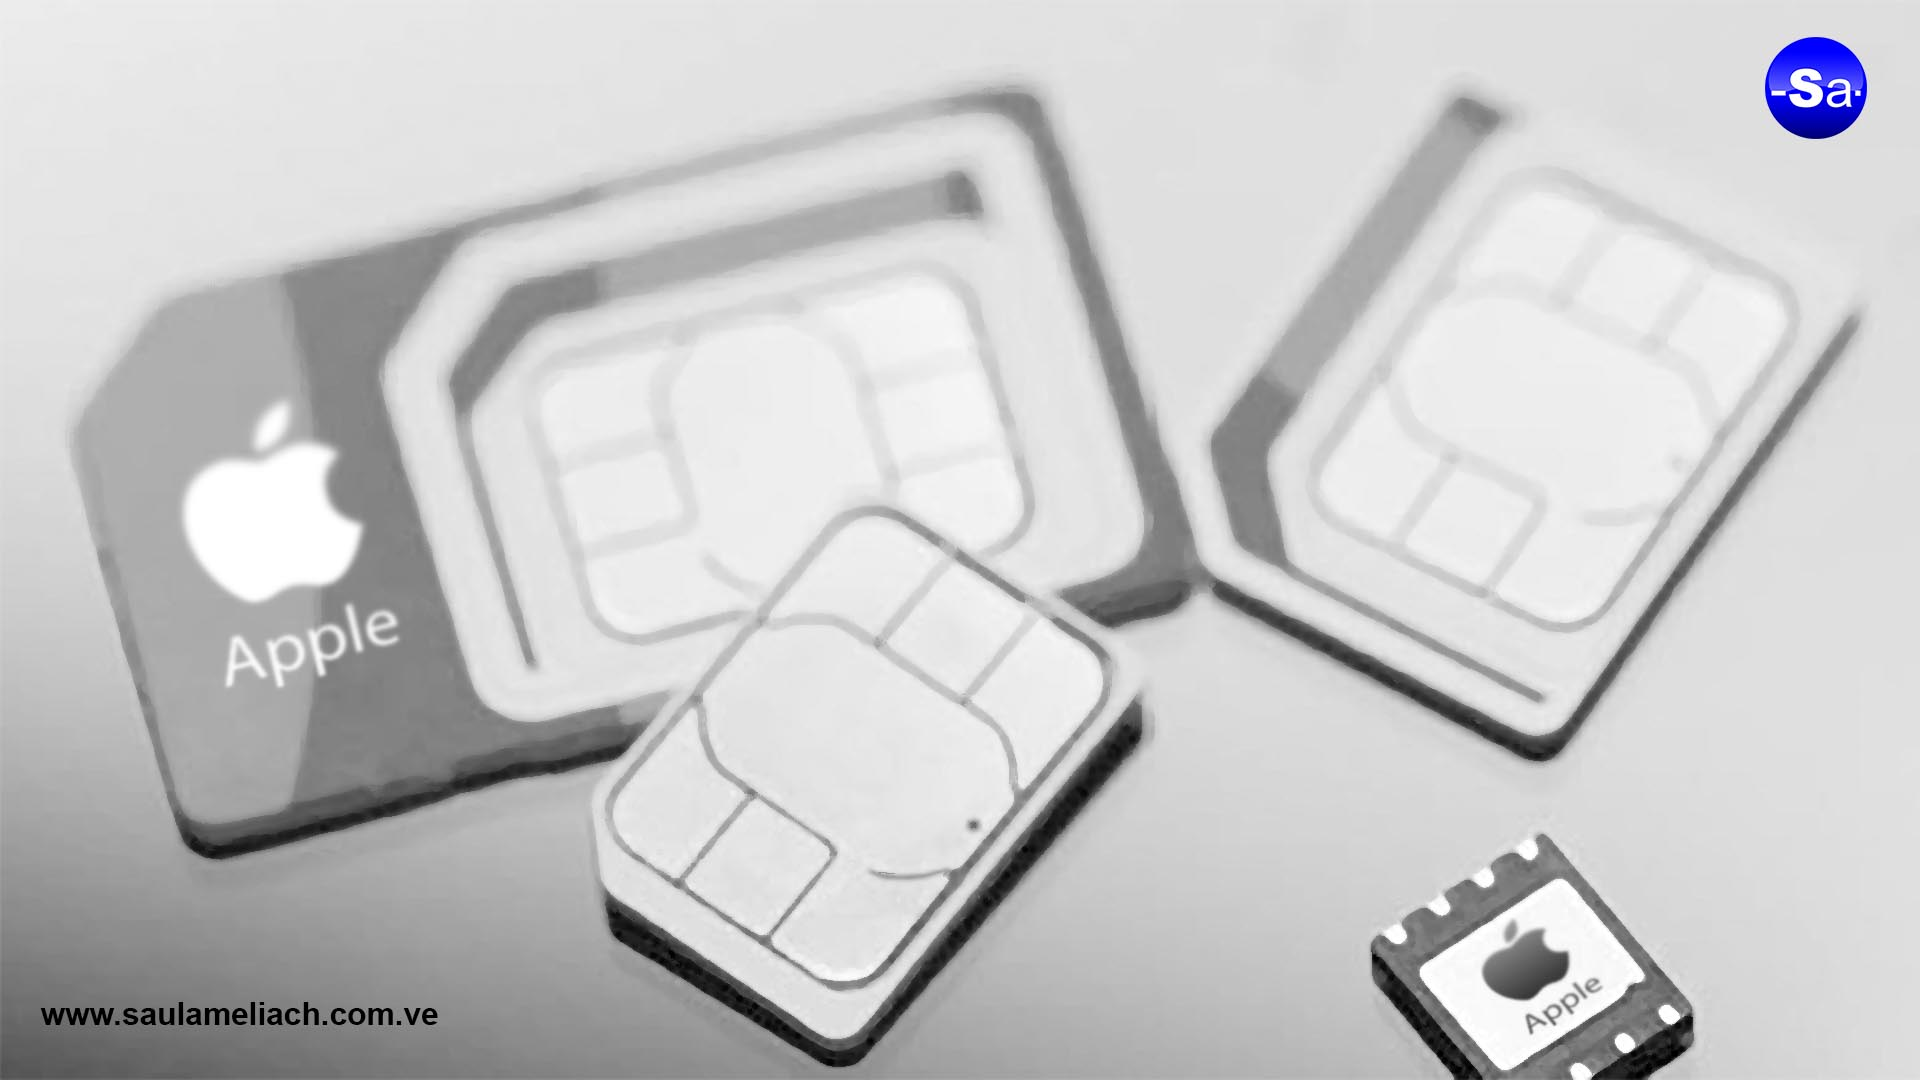 Saul Ameliach - Apple innova eSIM para iPhone XS - eSIM